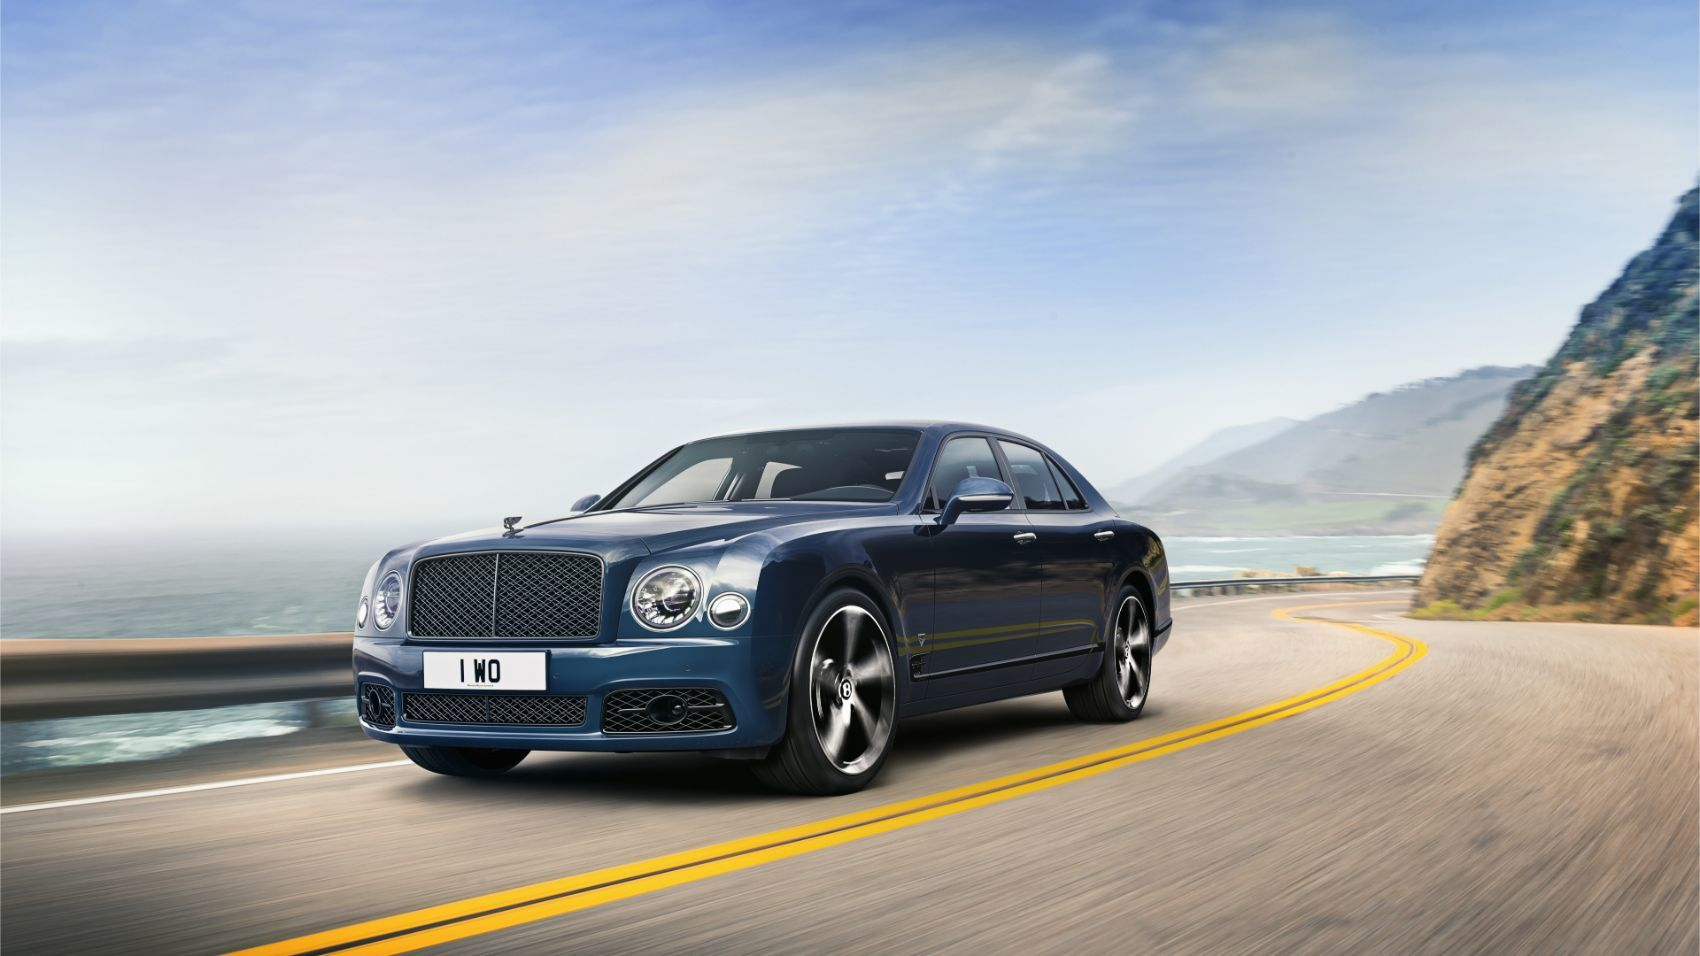 Bentley Mulsanne 6.75 Edition: A Proper Send-Off For This Gem